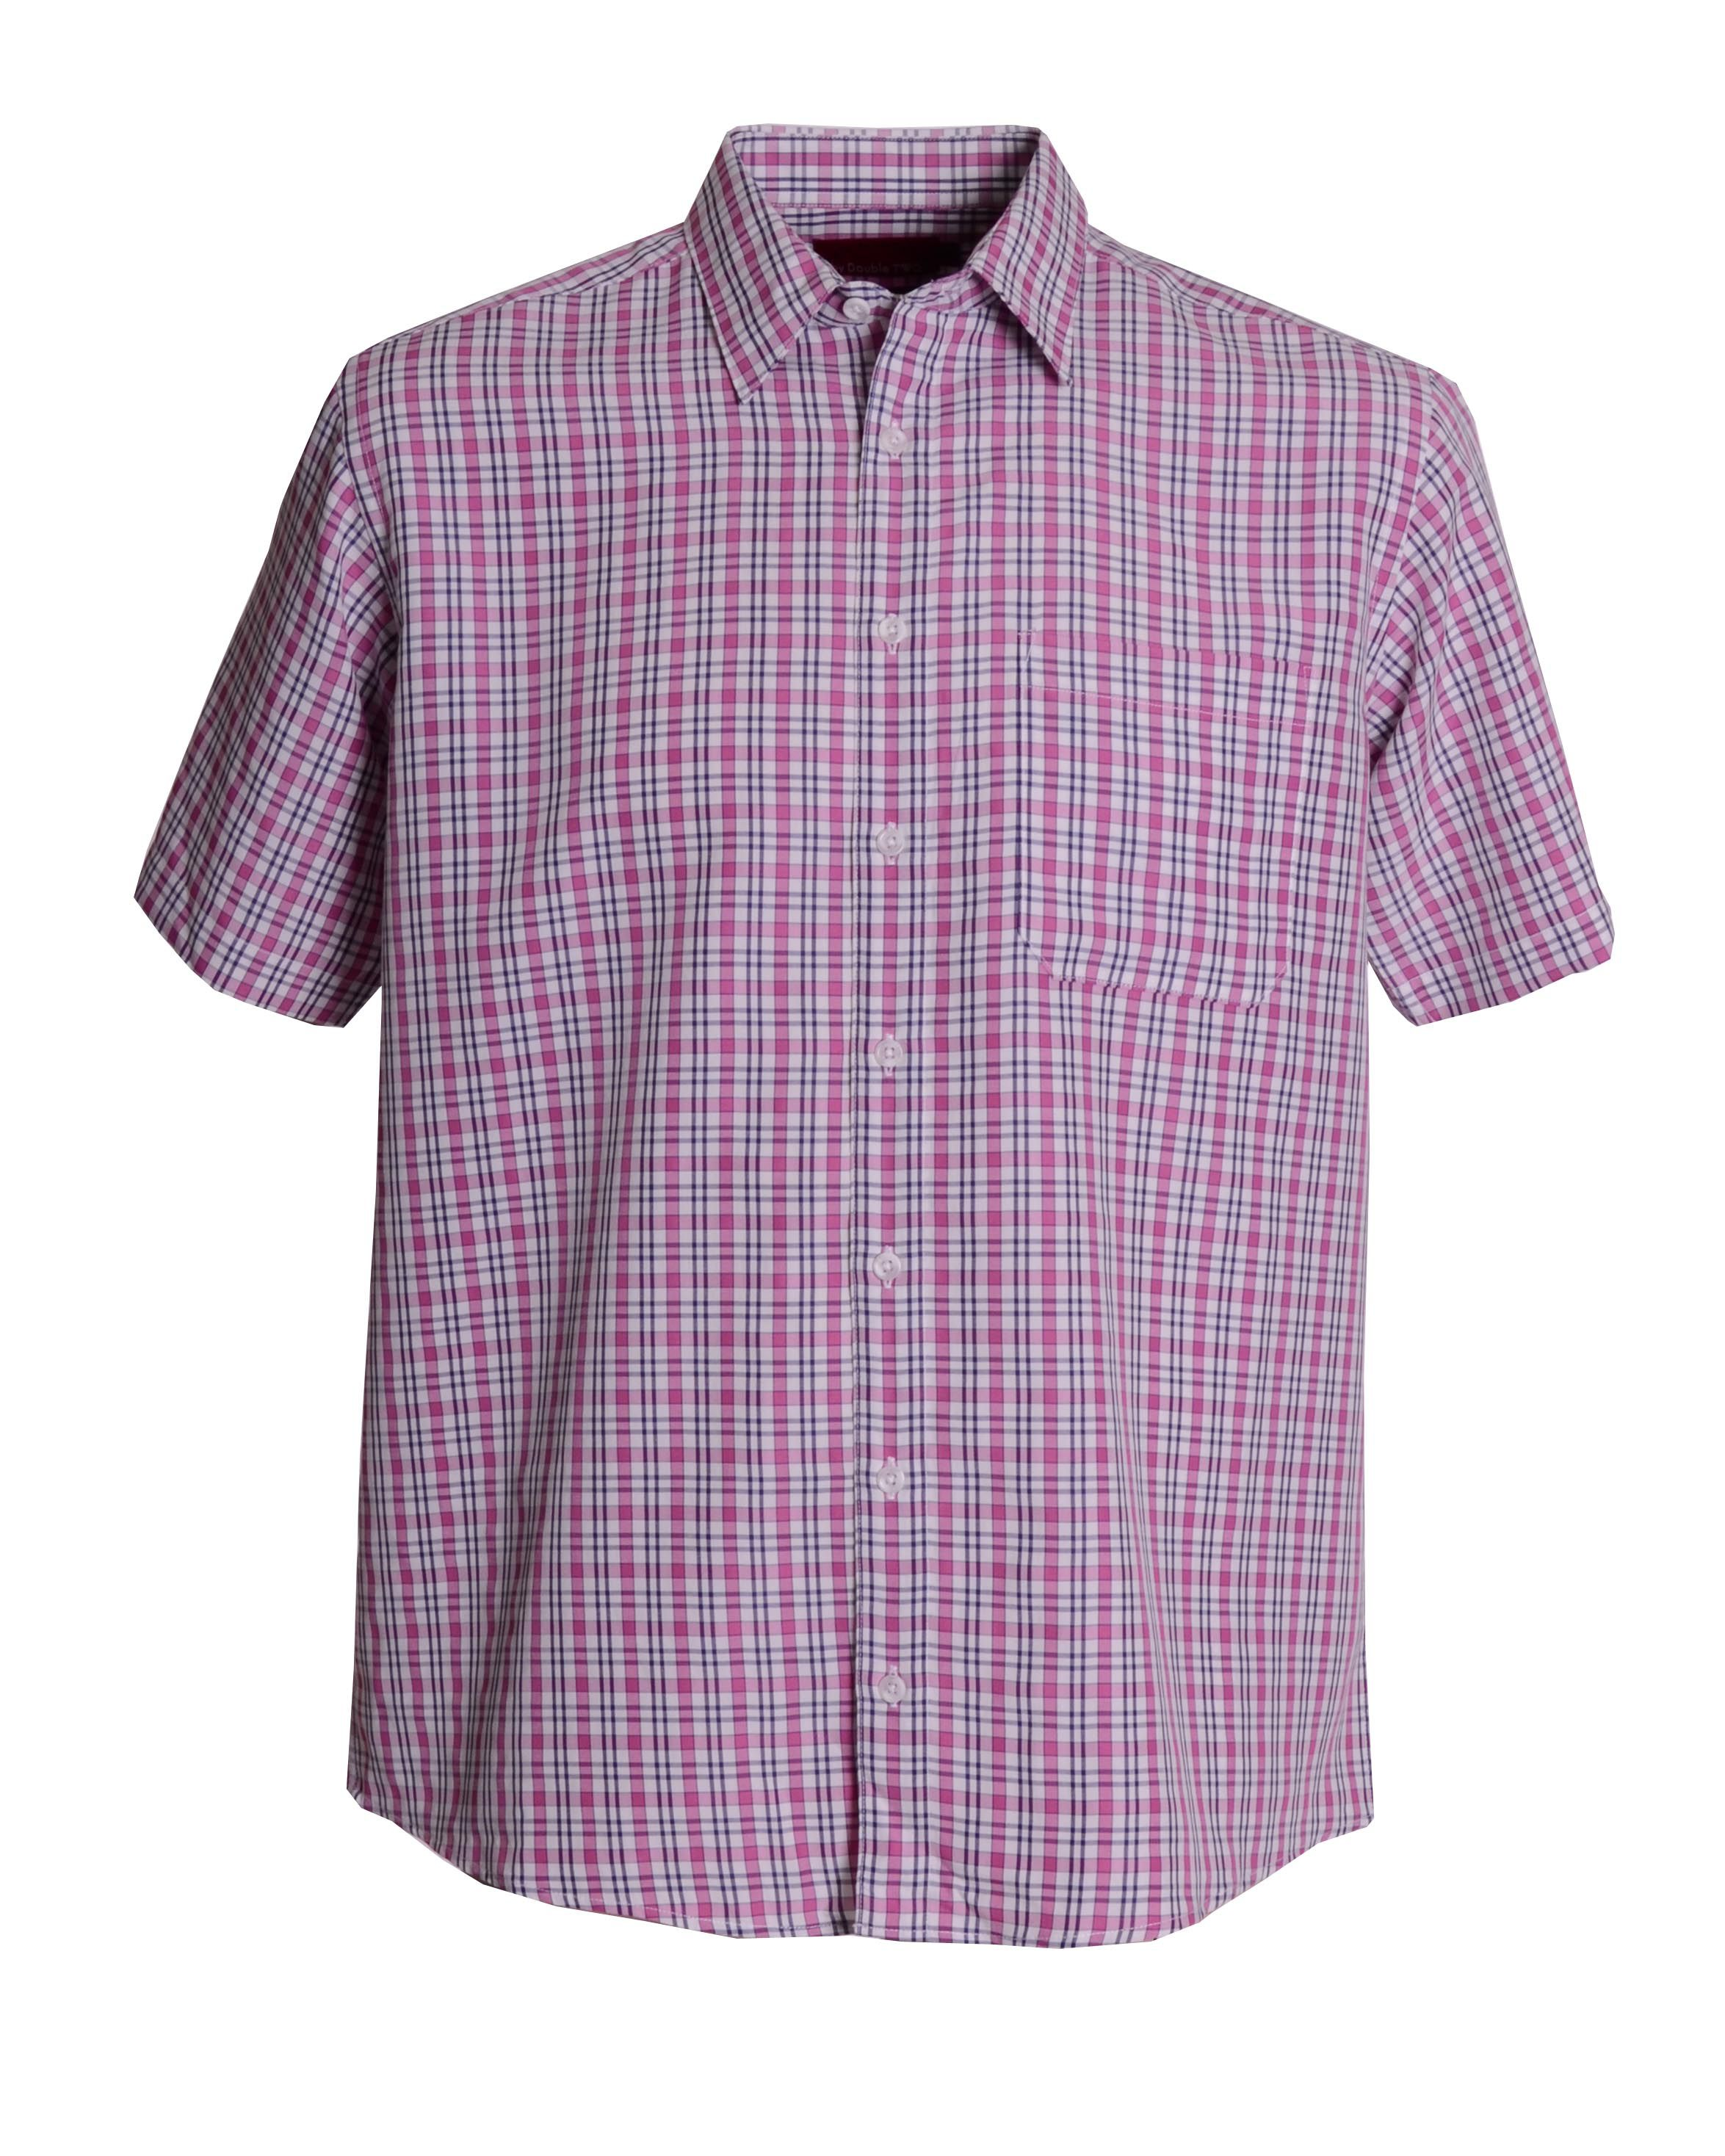 King size modal check long sleeve shirt